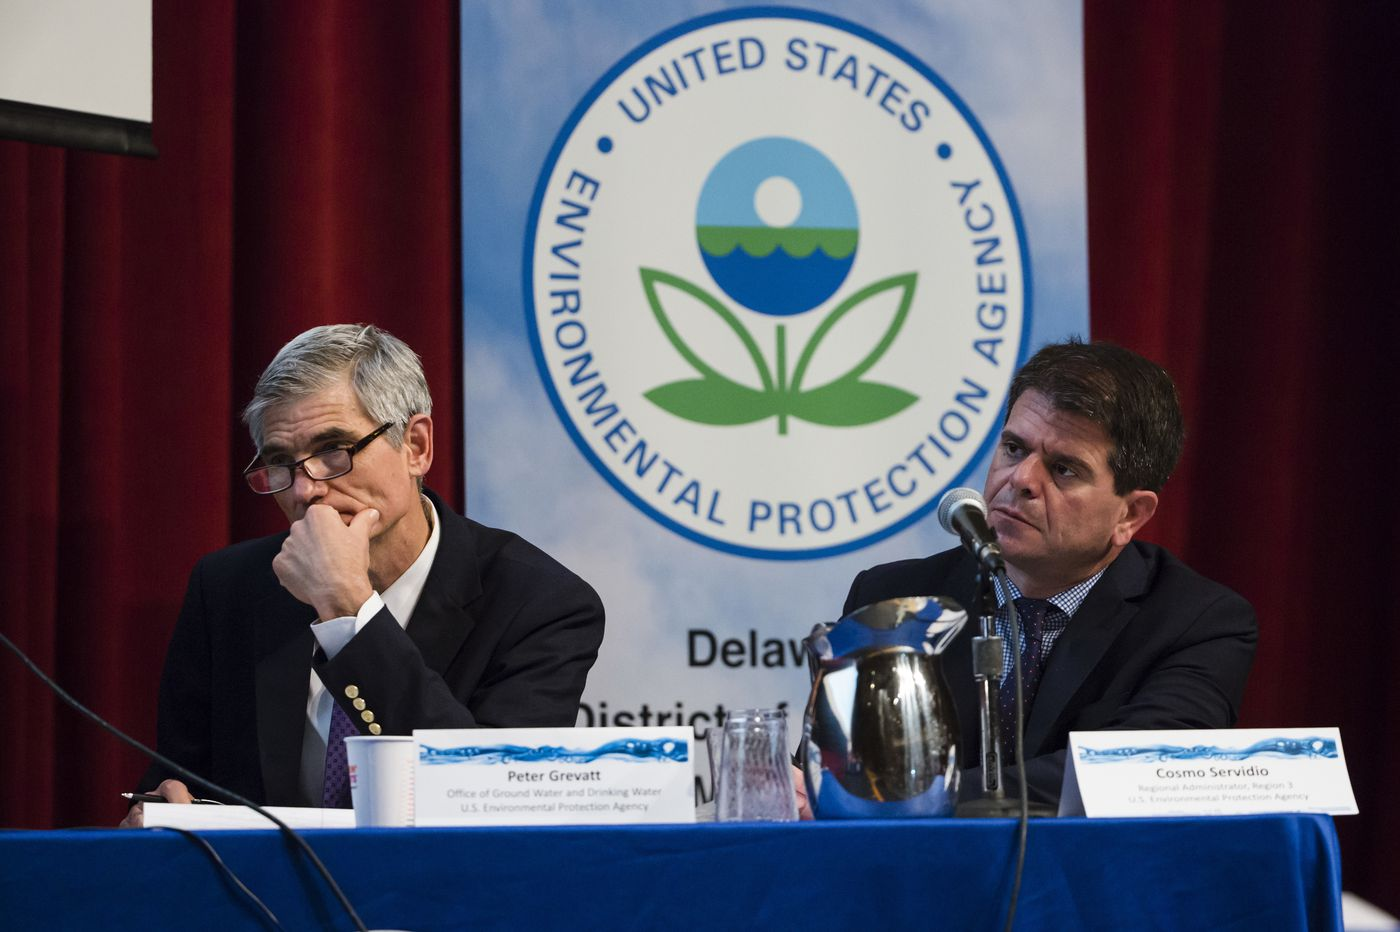 EPA outlines plan for dealing with toxic chemicals in water